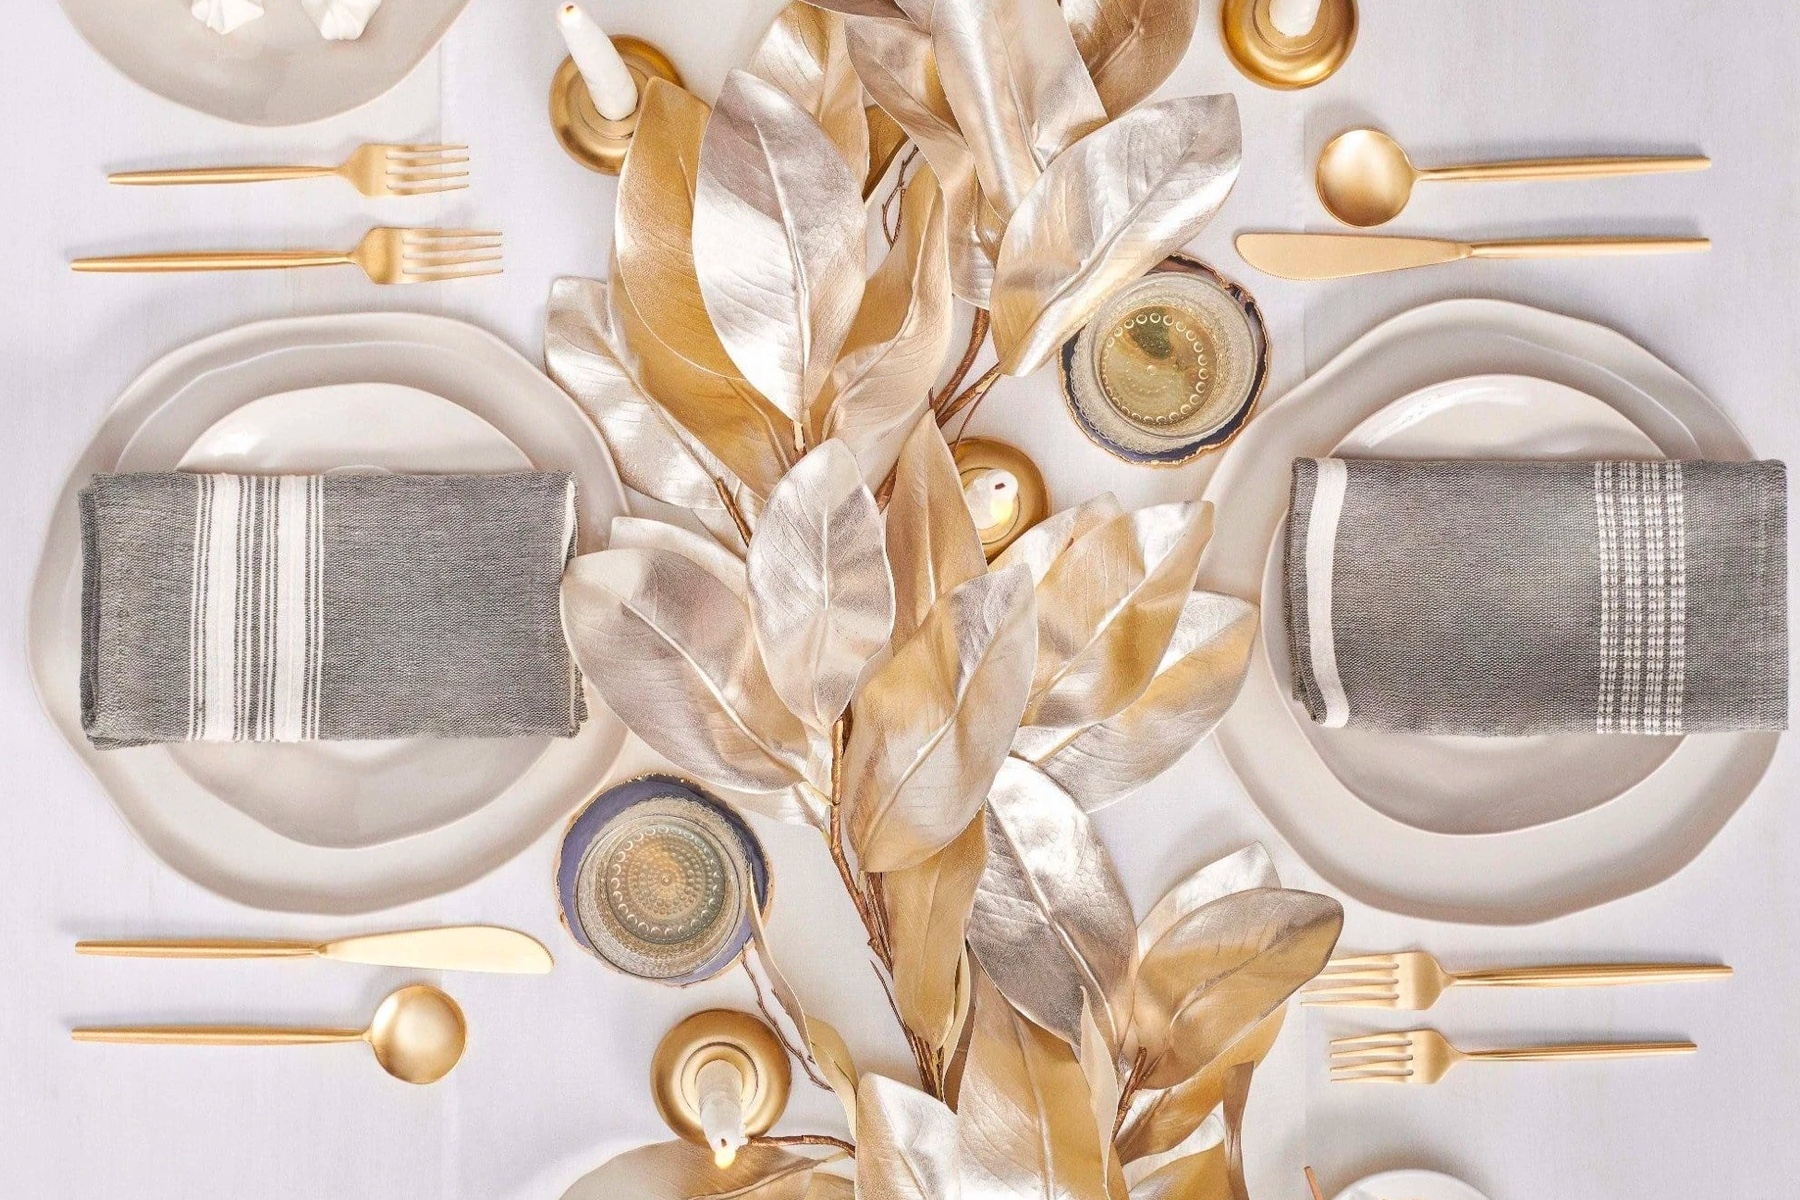 white and gold tablesetting from Social Studies featuring gold and silver leaves